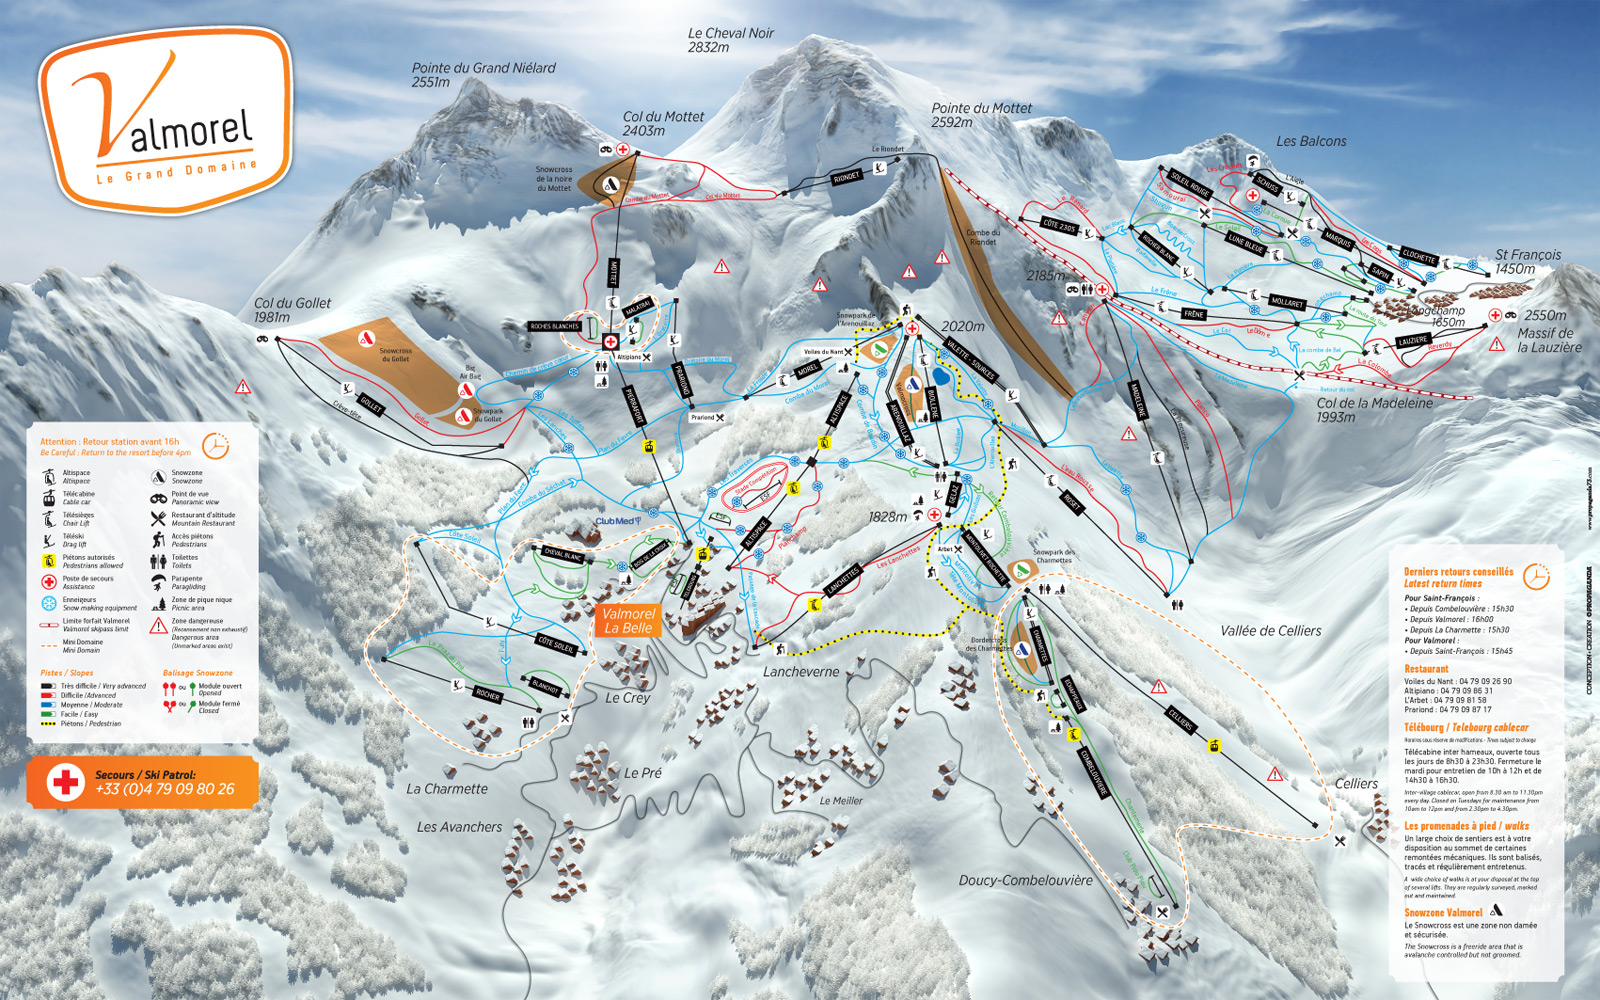 Valmorel Ski Resort Piste Map